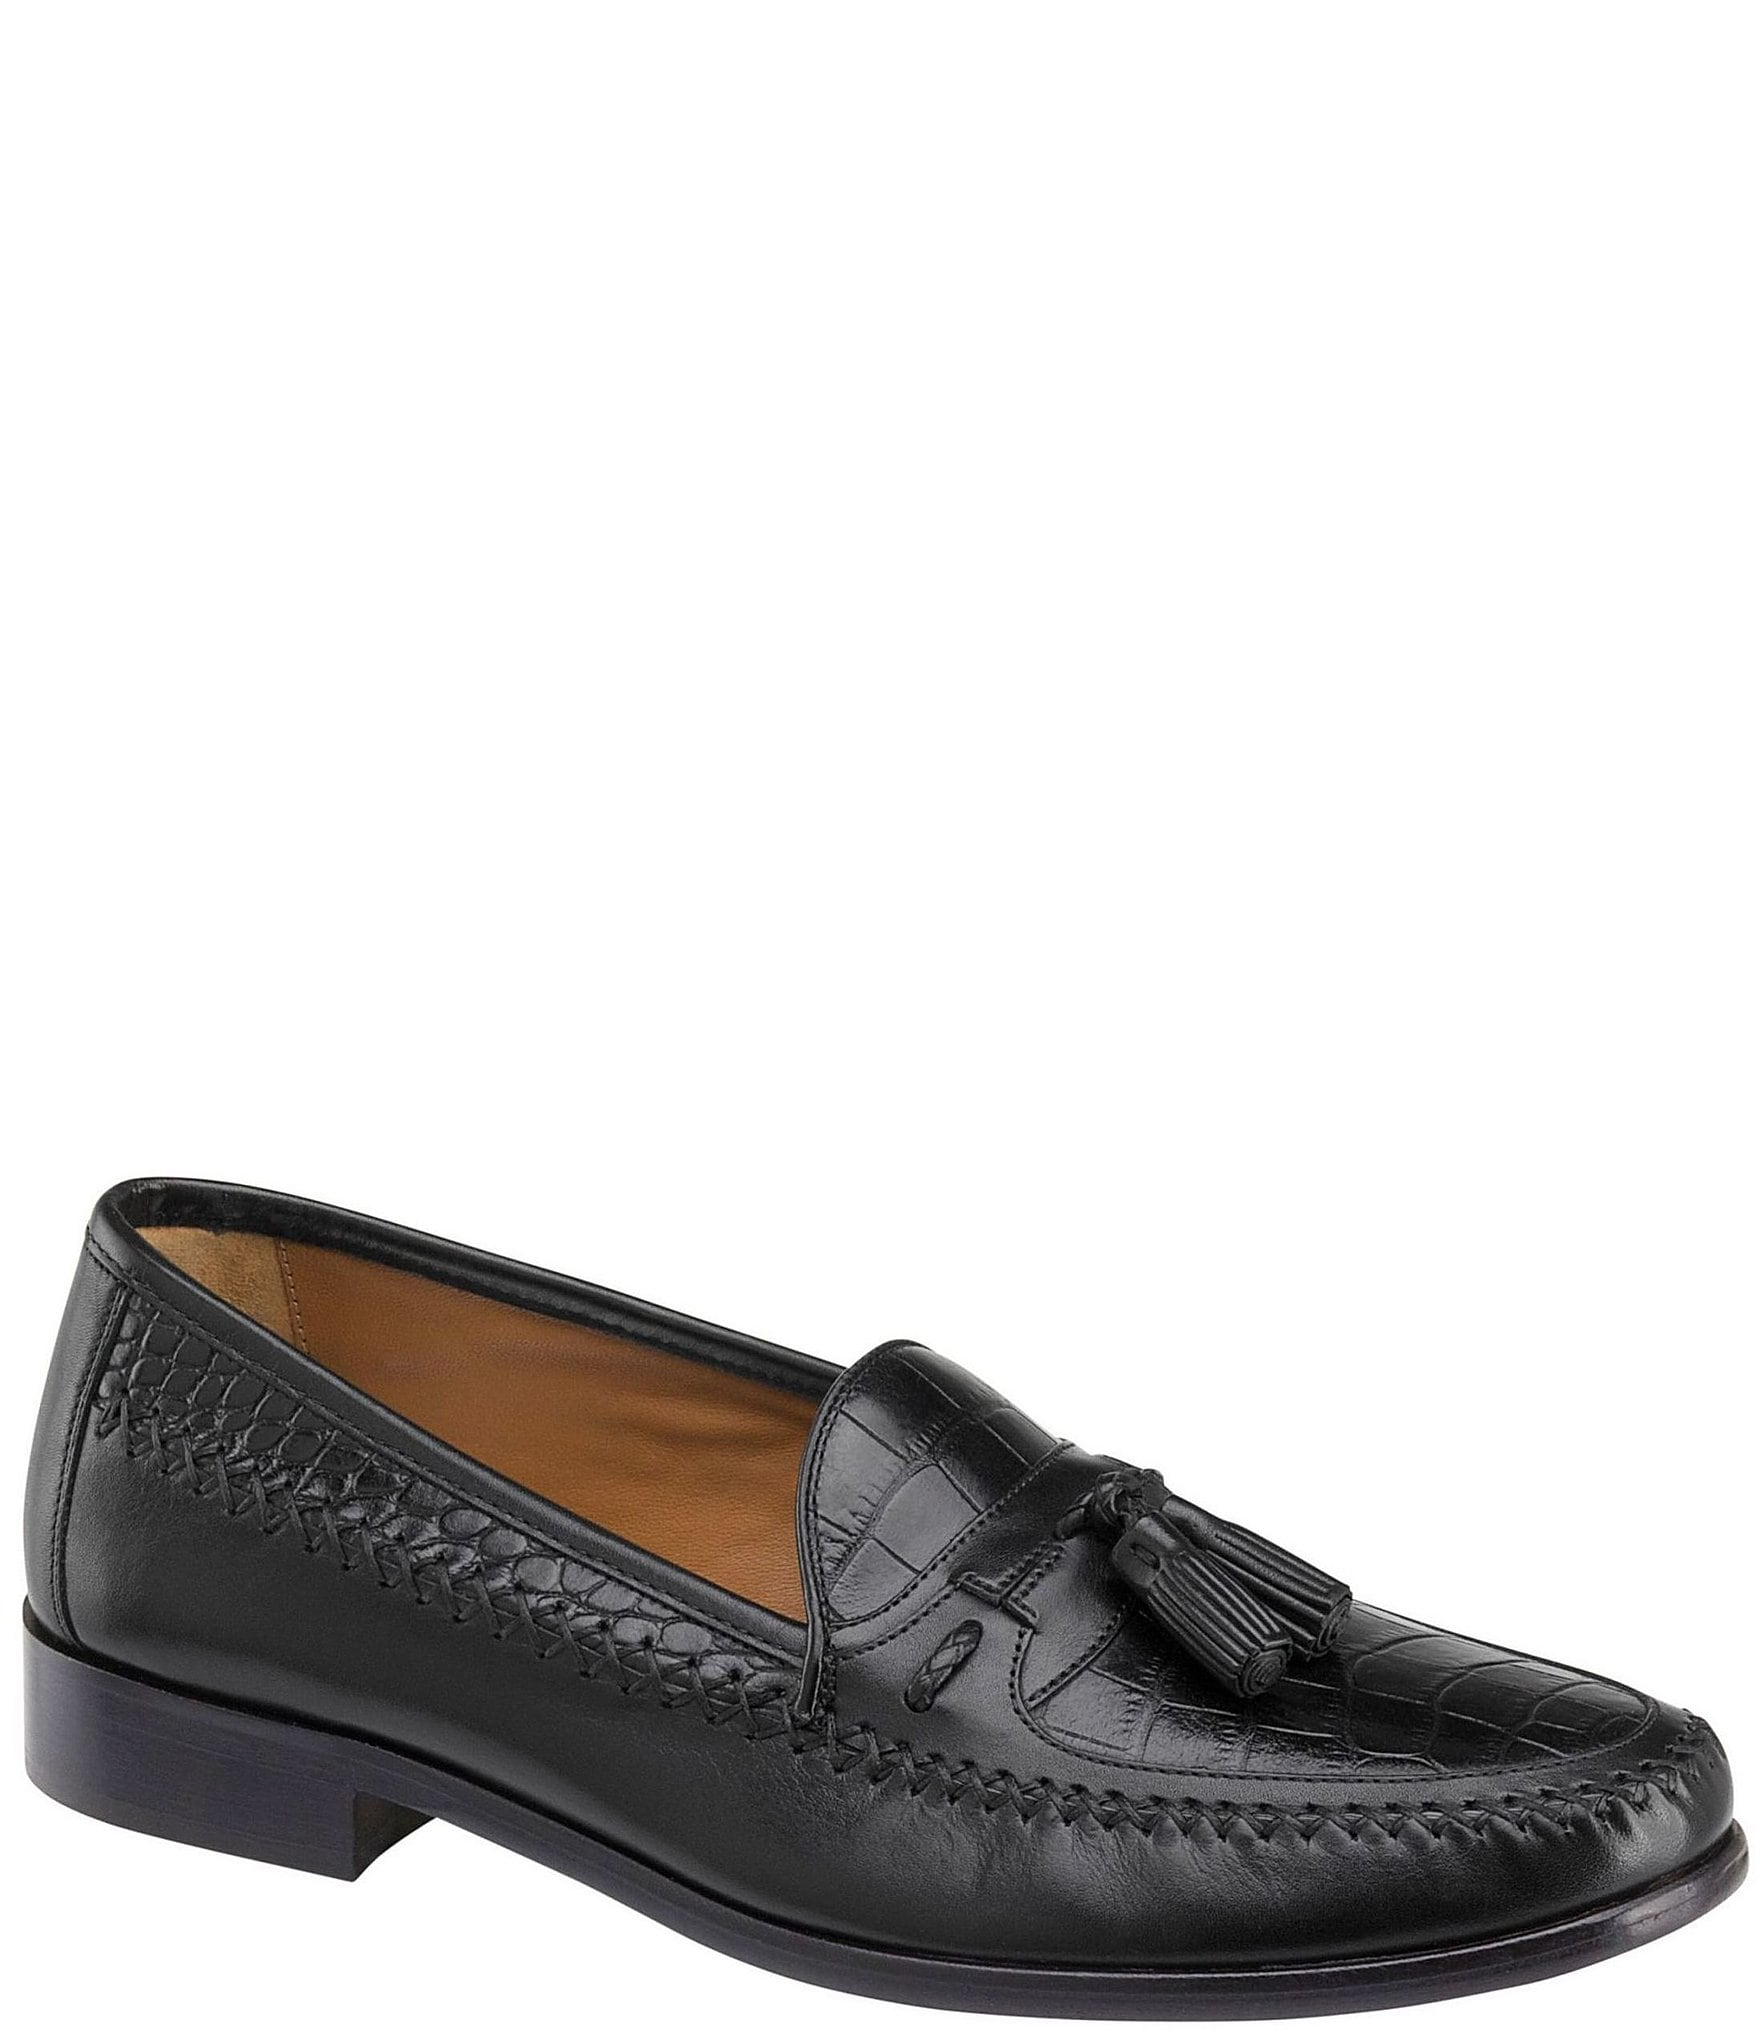 Domani Dress Shoes